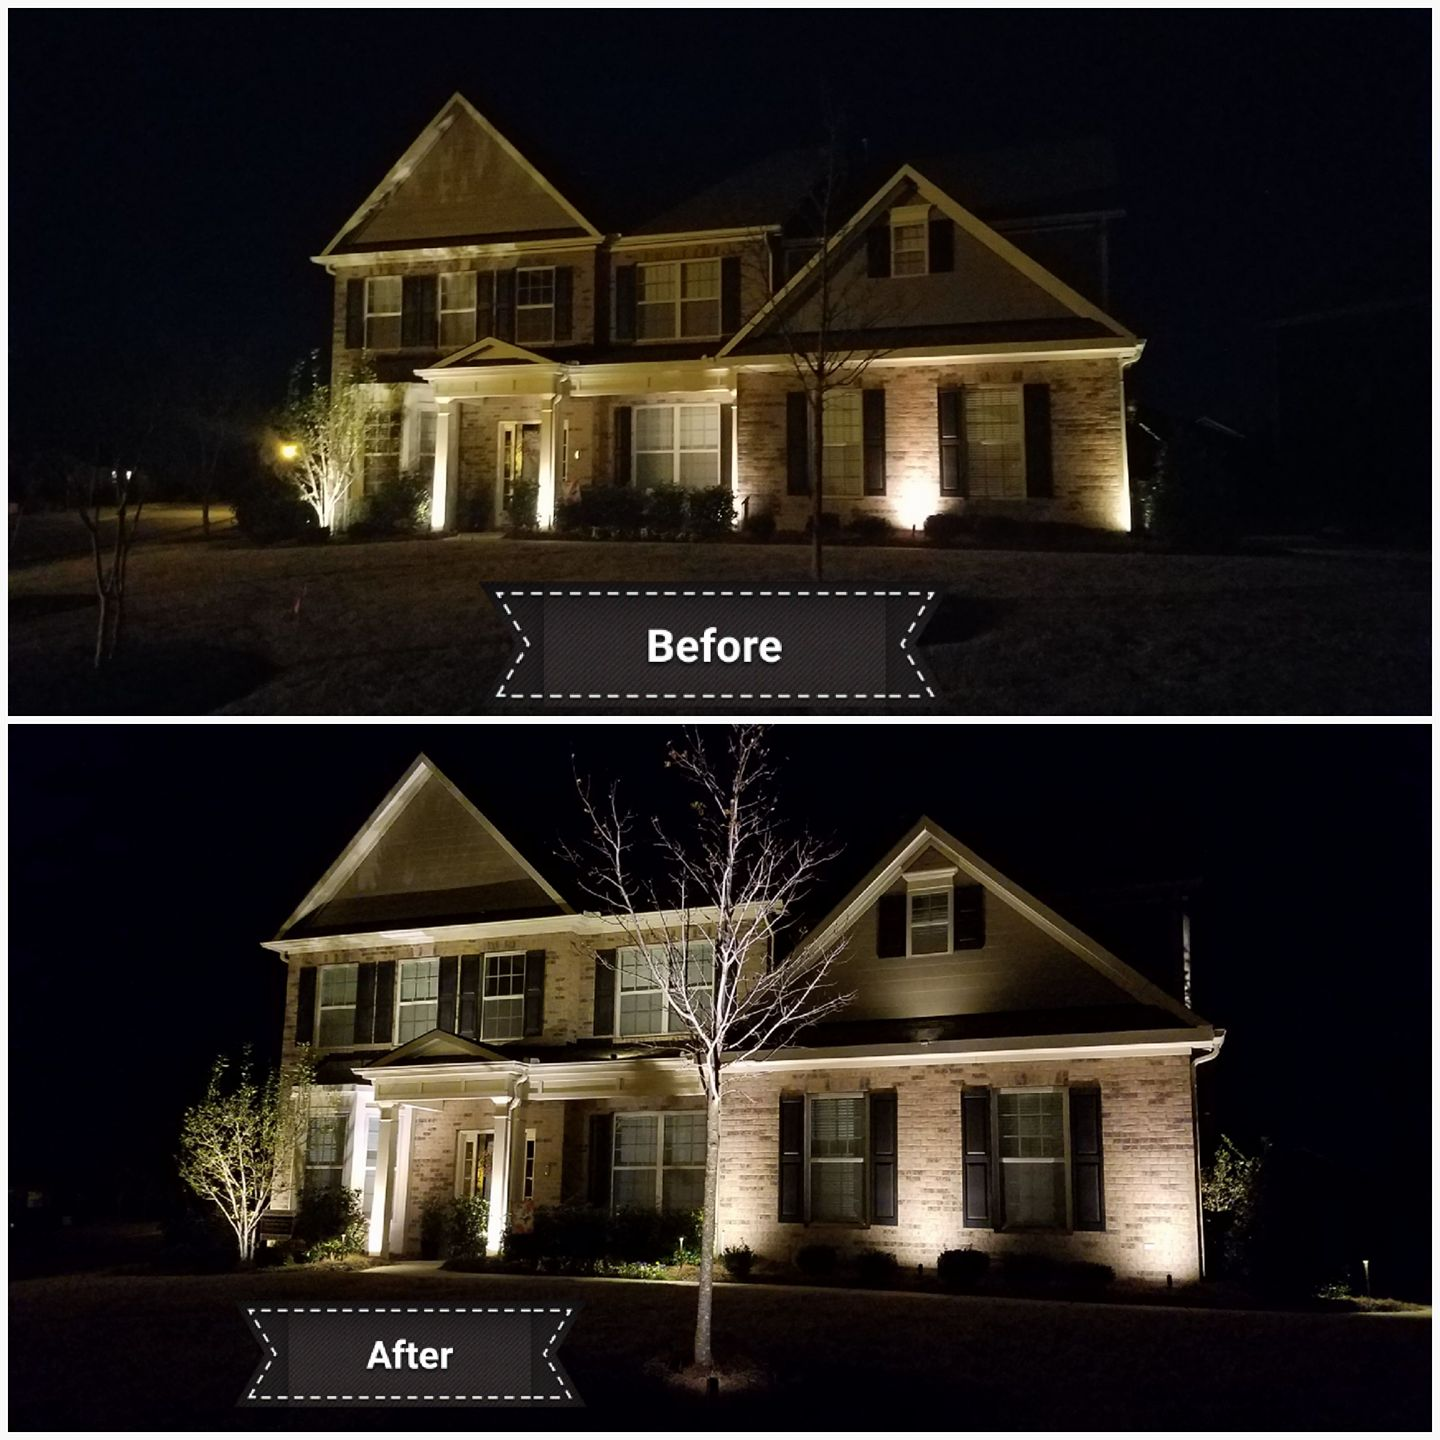 Landscape Lighting Used: What You Don't See Can Hurt You In Powdersville Outdoor